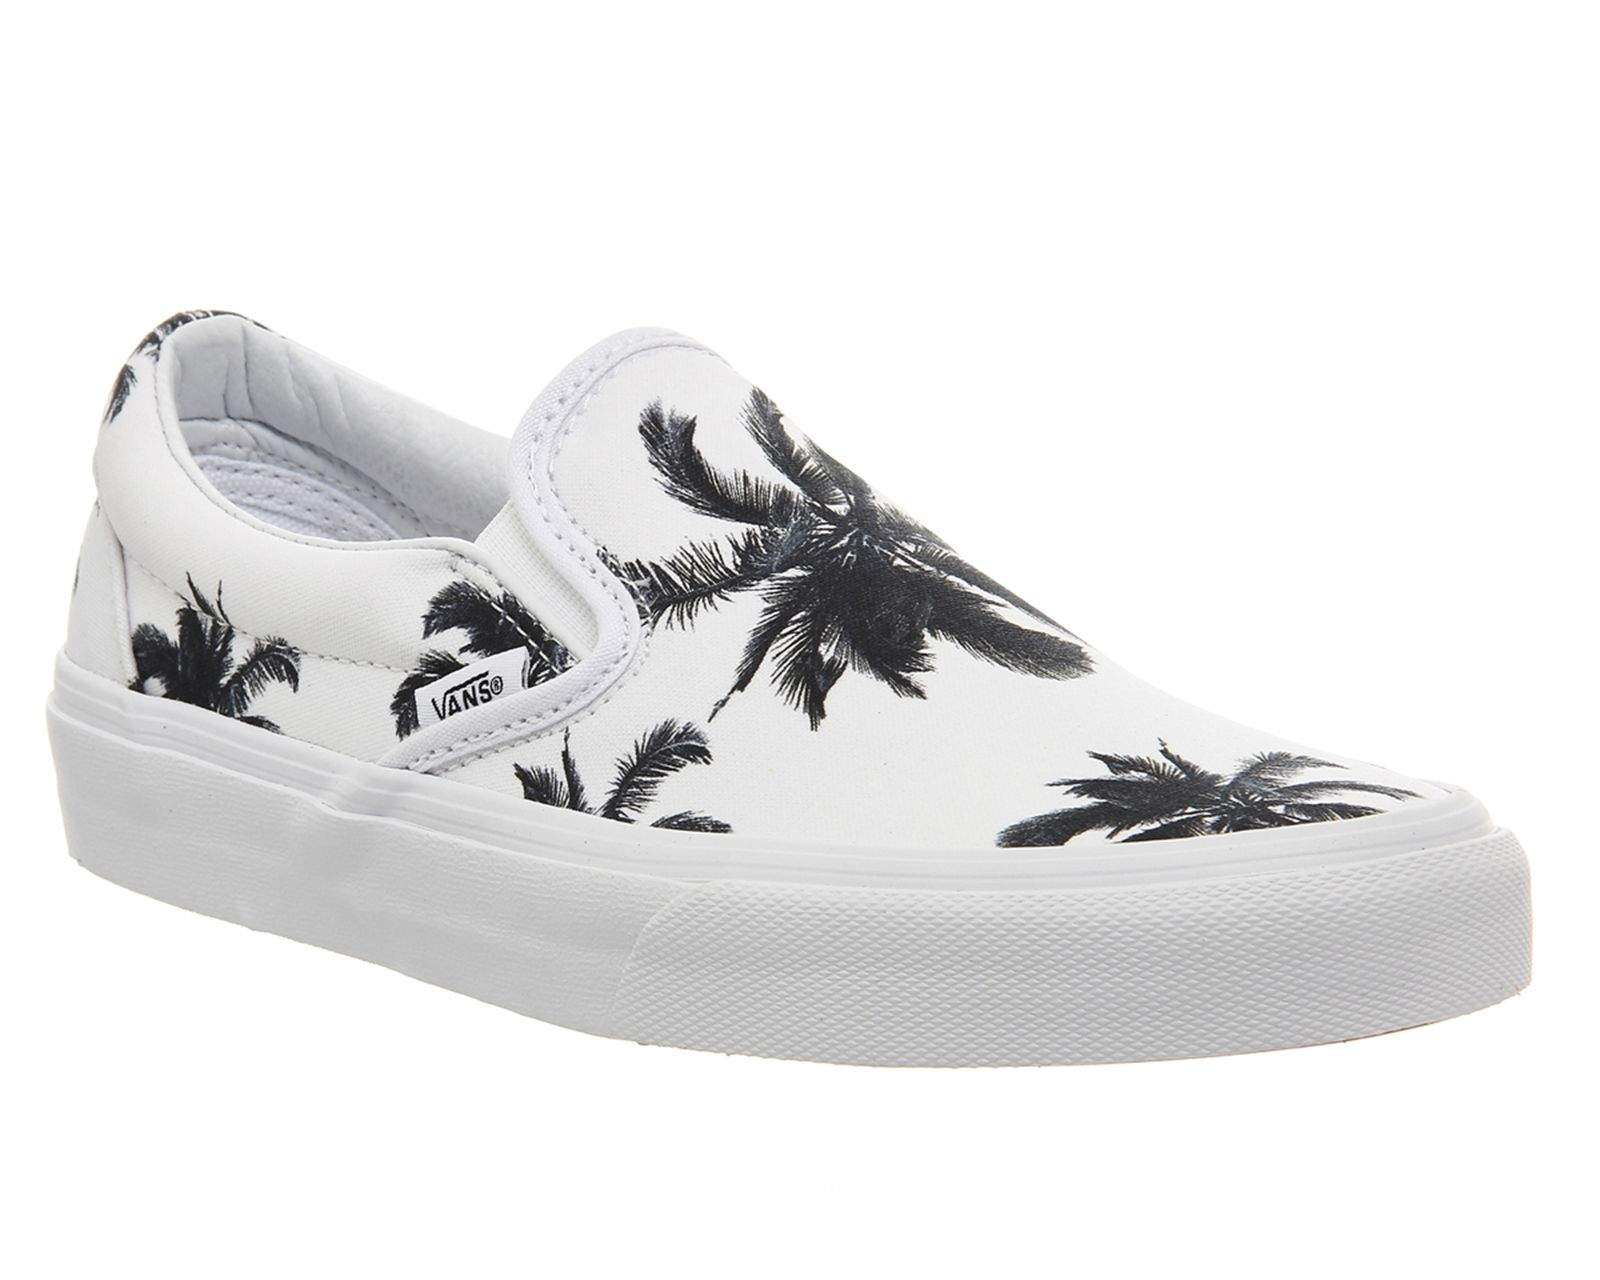 b8830fb295 Buy Palm Print White Vans Classic Slip On Shoes from OFFICE.co.uk ...